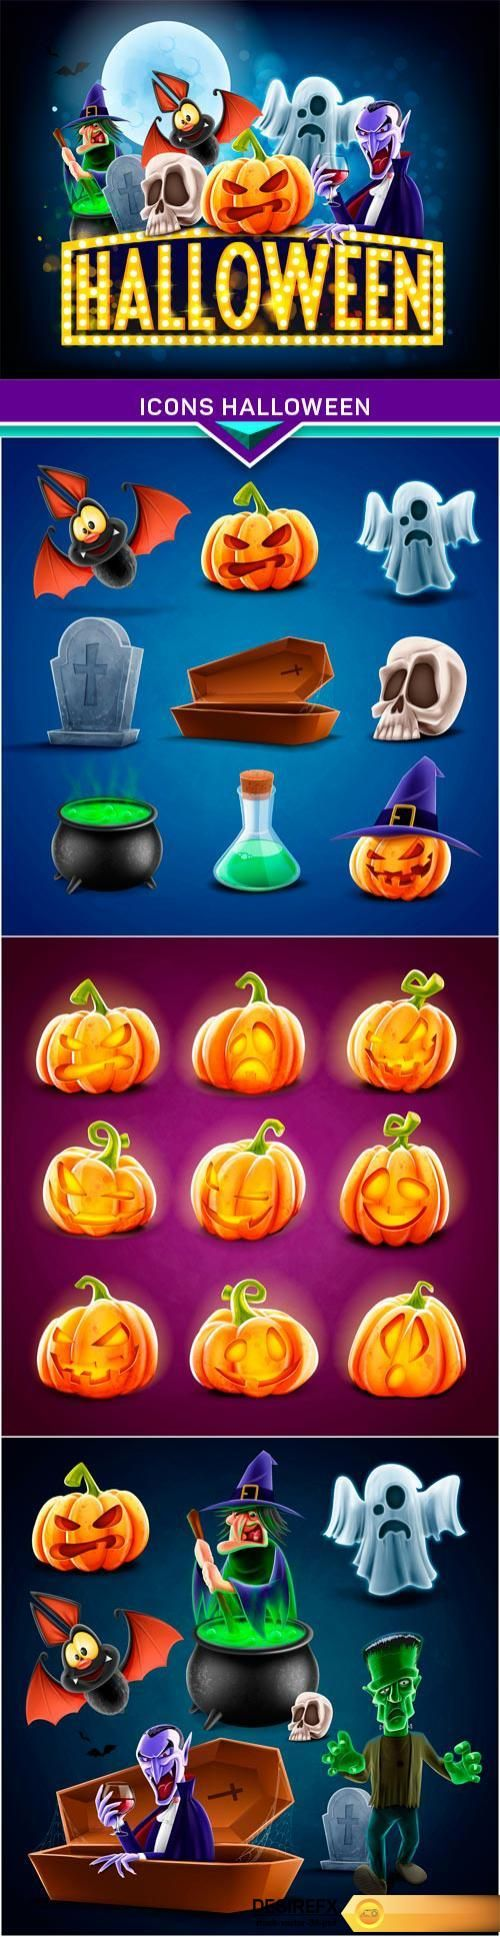 Find your Grapfix Desire With US http://www.desirefx.me/icons-halloween-4x-eps/